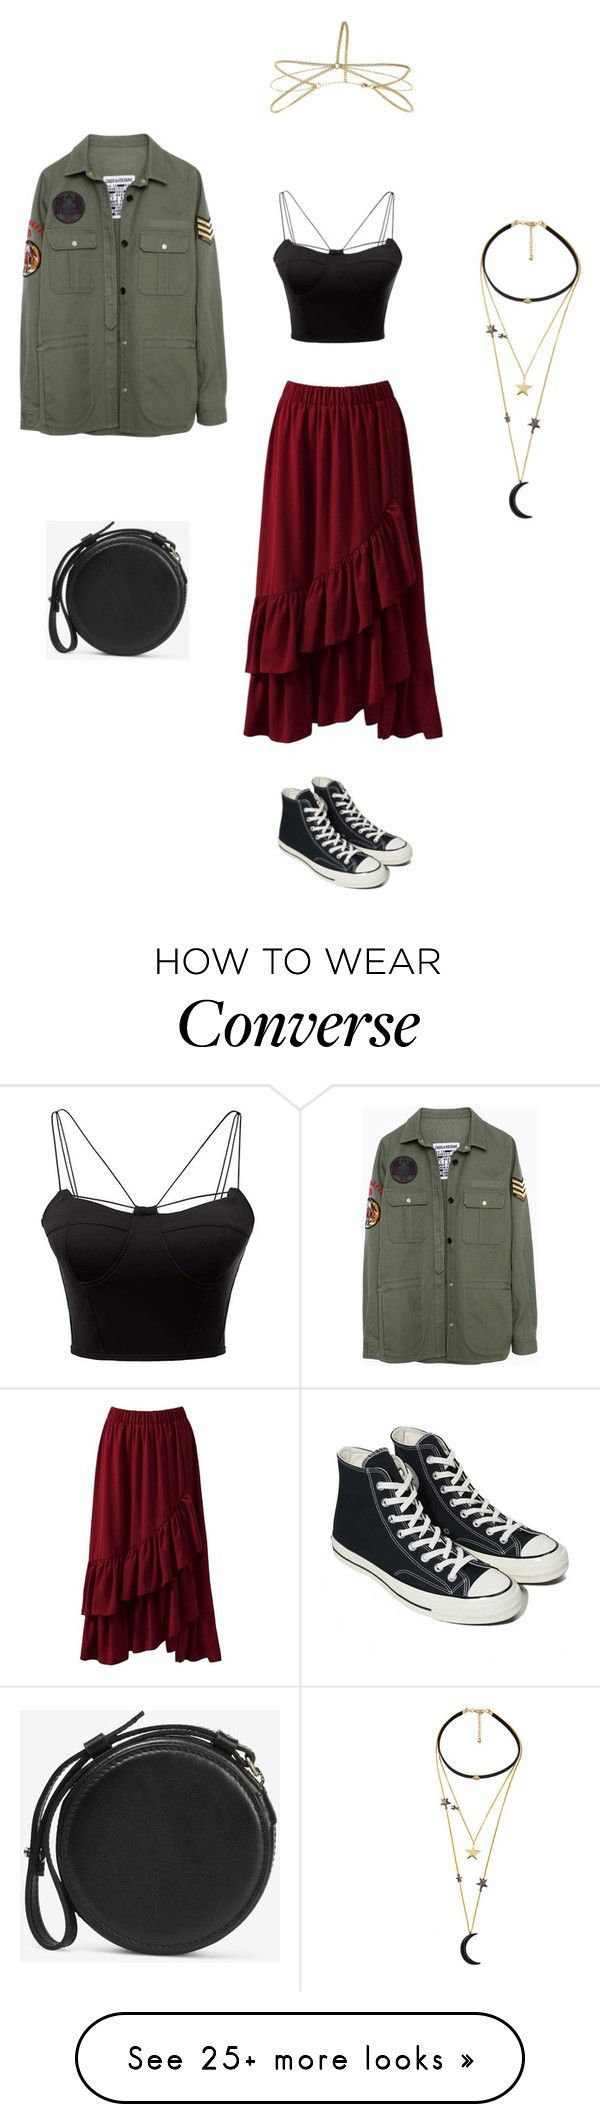 """Decended"" by thelittlefanthatcould on Polyvore featuring Sans Souci, WithChic, Zadig & Voltaire, Converse, Miss Selfridge and Maison Margiela #schooloutfits"